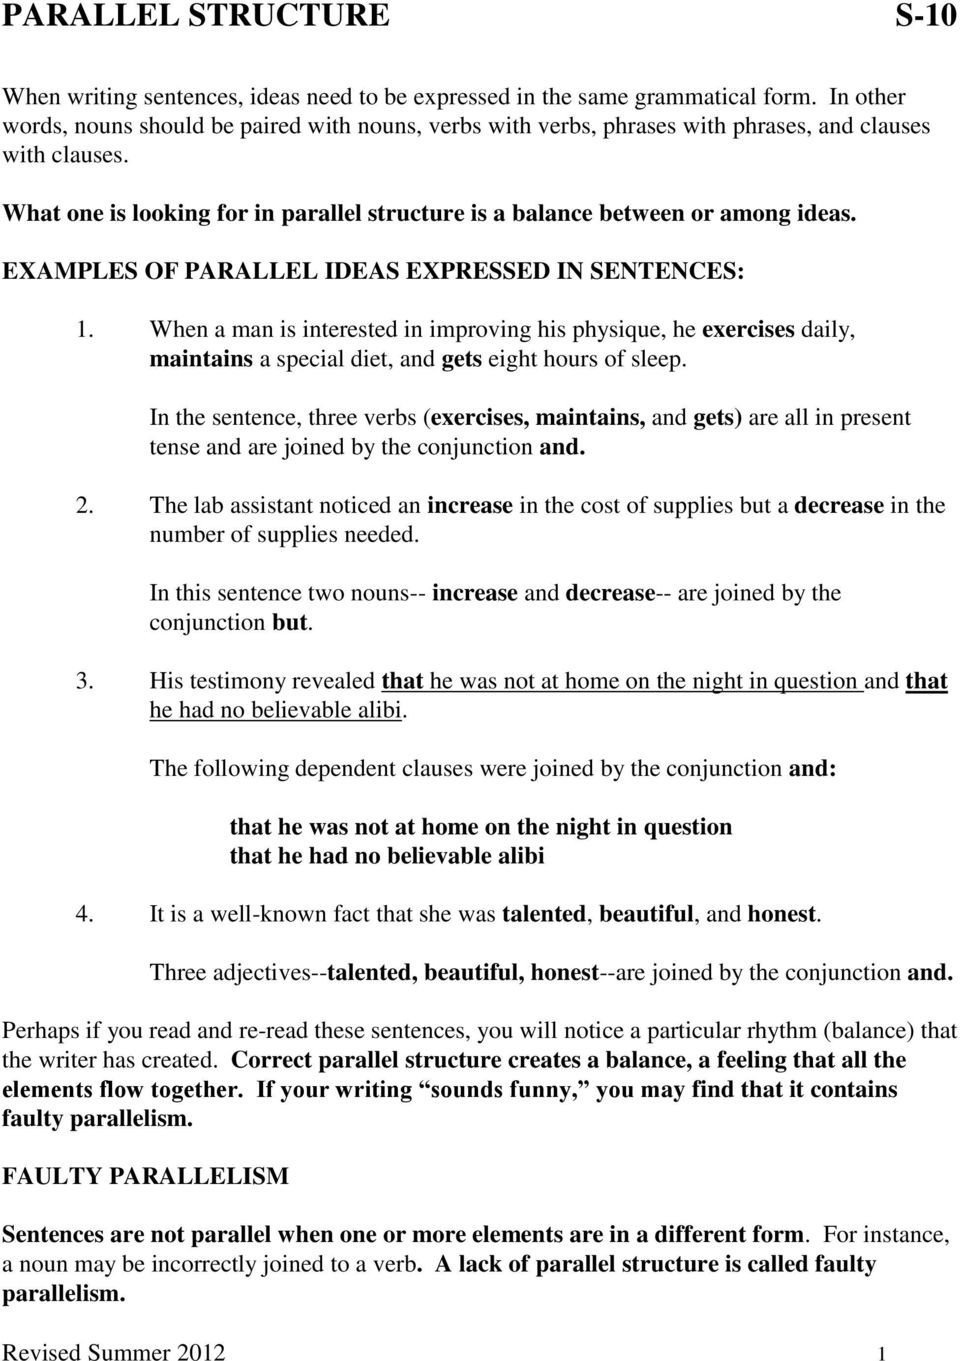 Grammar Worksheets Parallelism Answers Parallel Structure S 10 Pdf Free Download